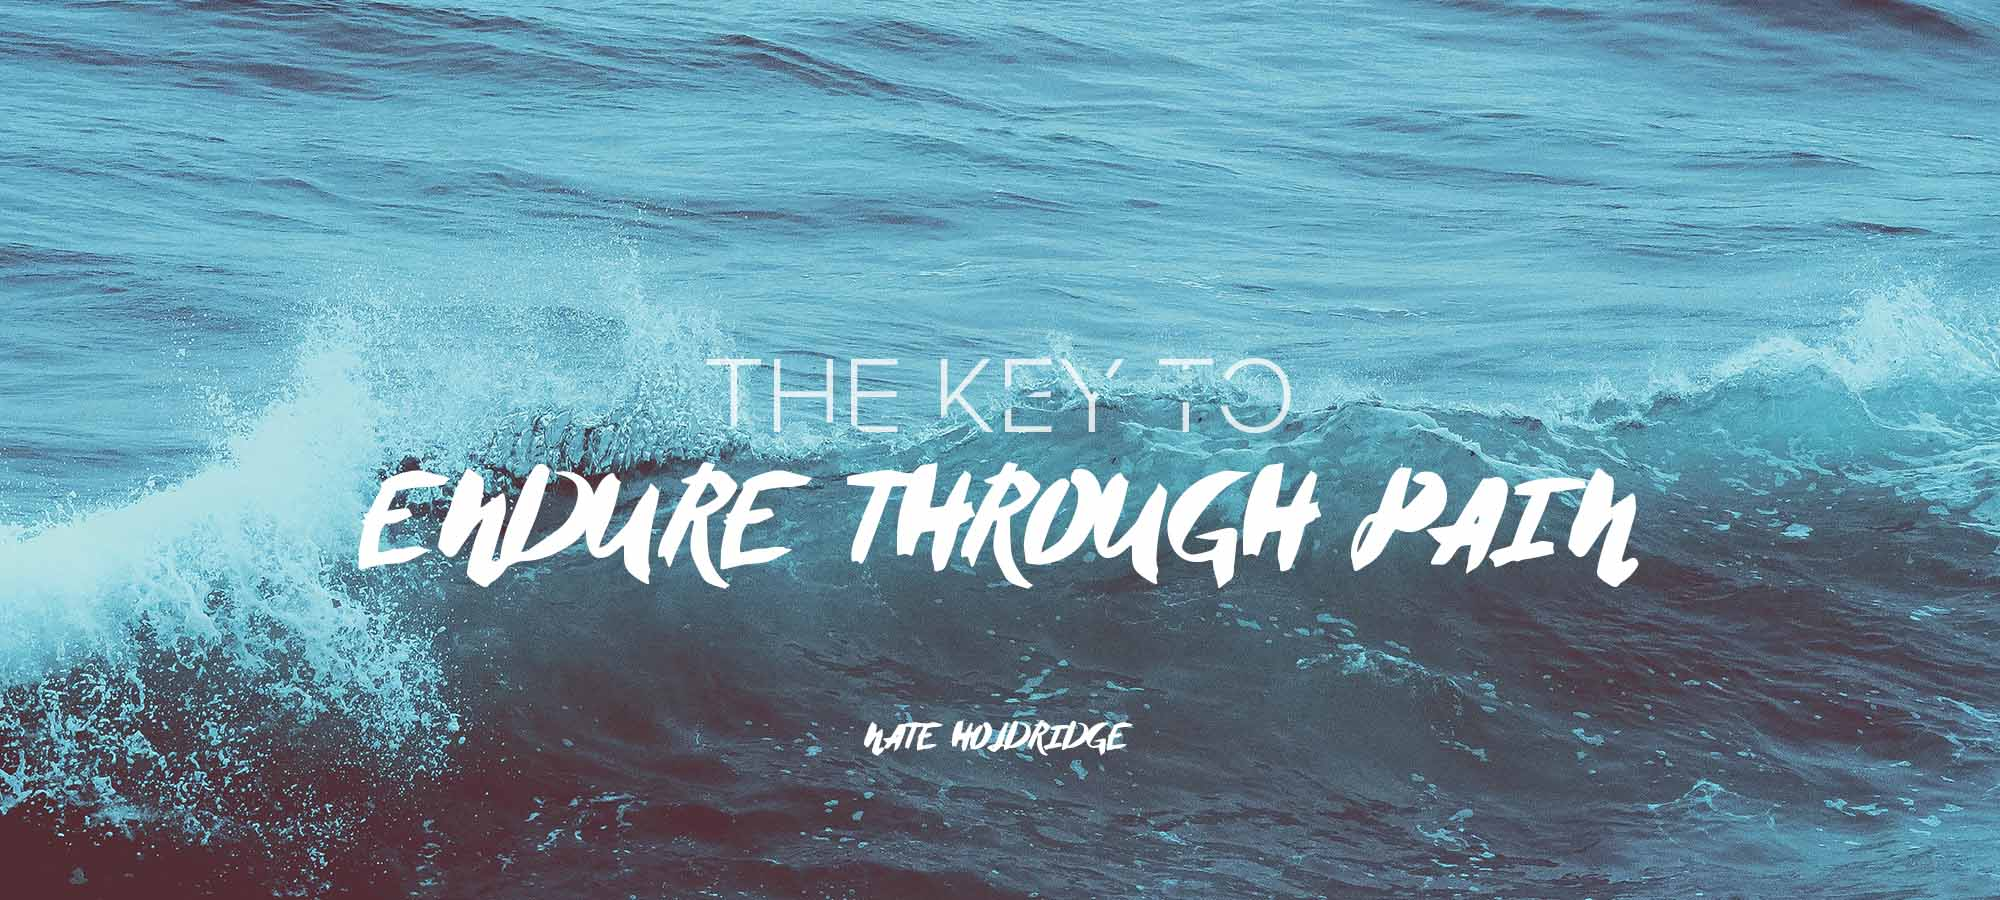 The Key to Endure Through Pain